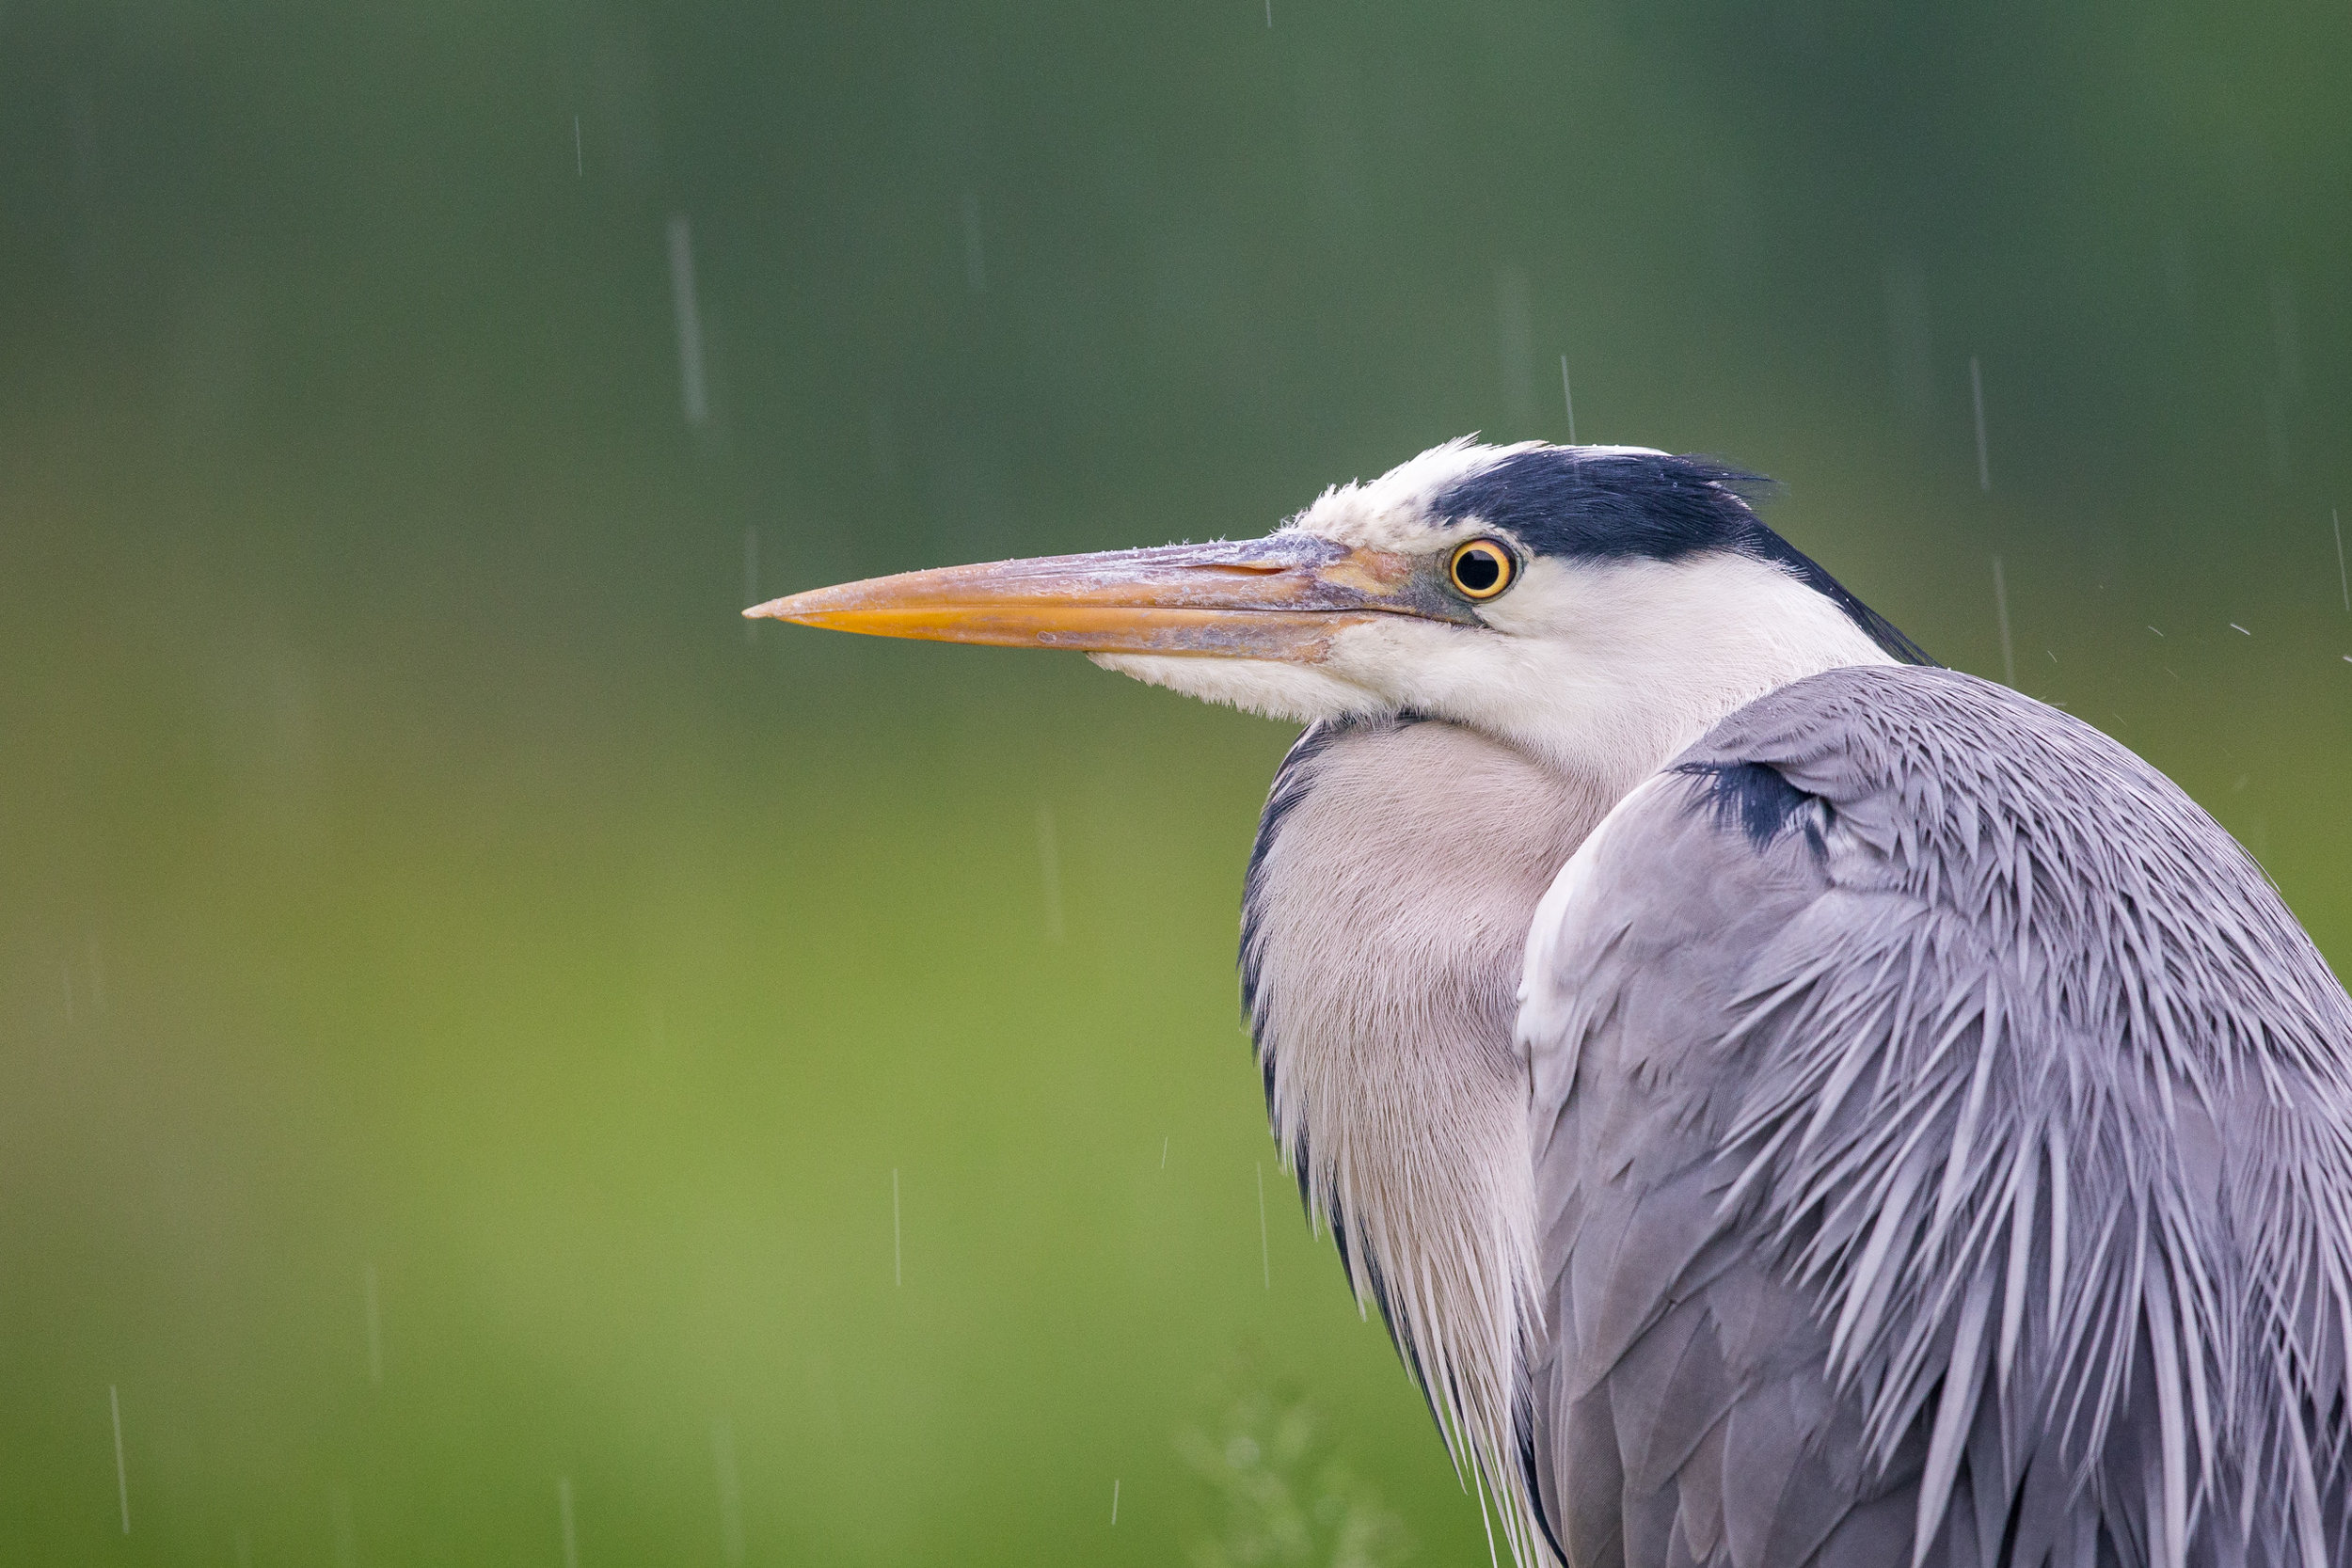 Image 02: Grey Heron during a downpour at Wildlife Photography Hides' Pond Hide